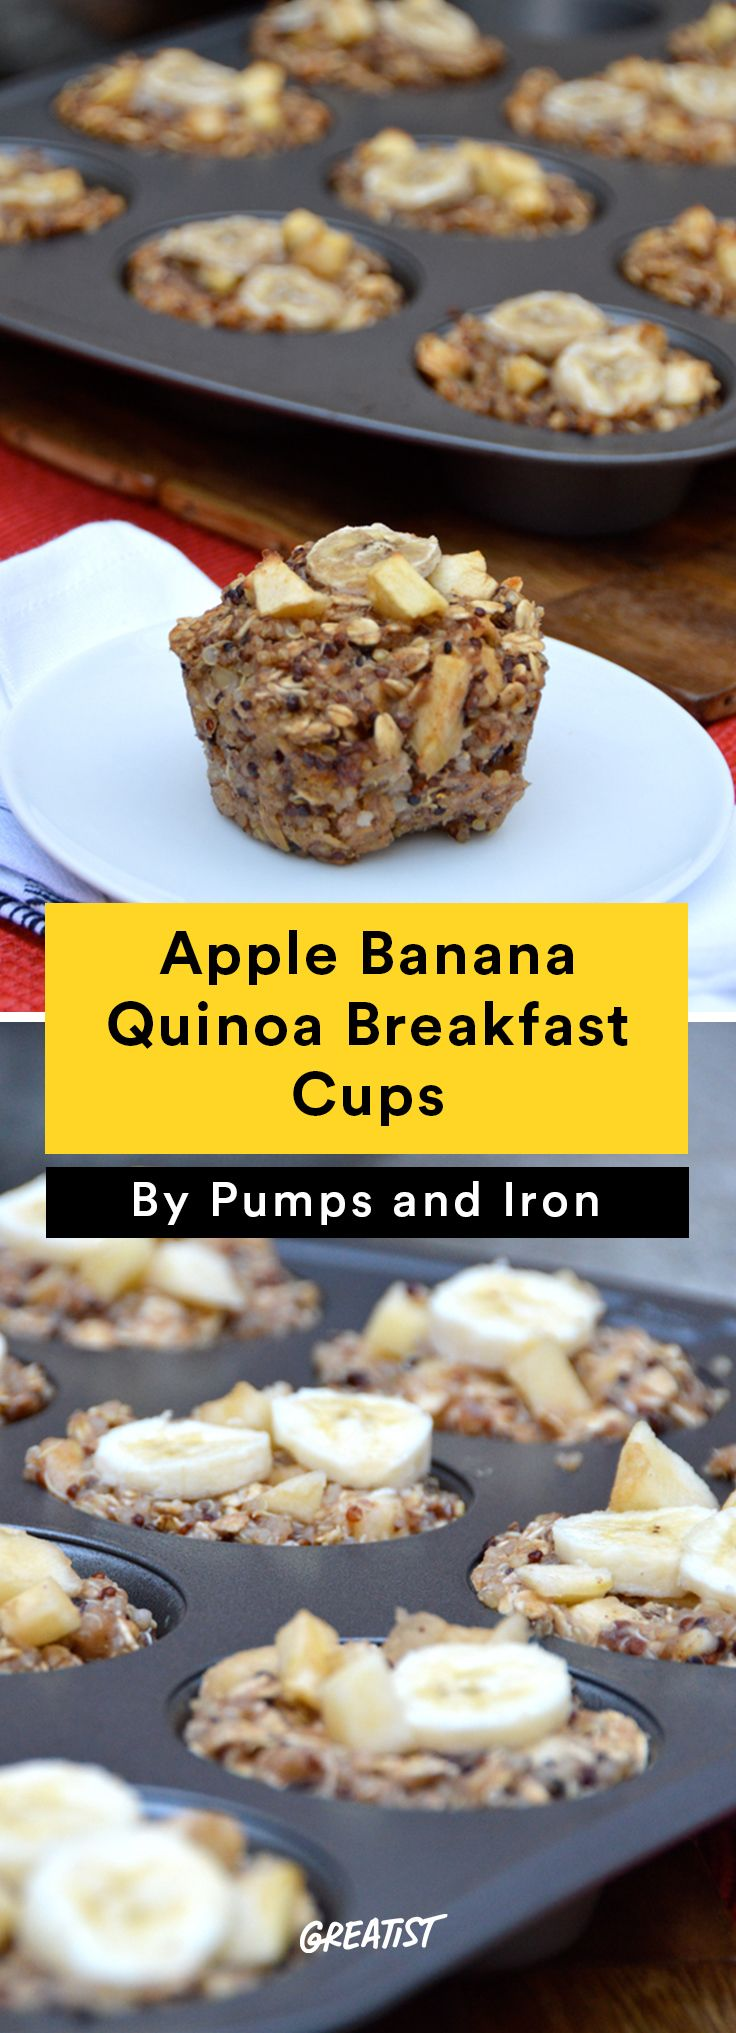 8. Apple Banana Quinoa Breakfast Cups #healthy #breakfast #recipes http://greatist.com/eat/healthy-breakfast-cup-recipes-to-fuel-your-mornings